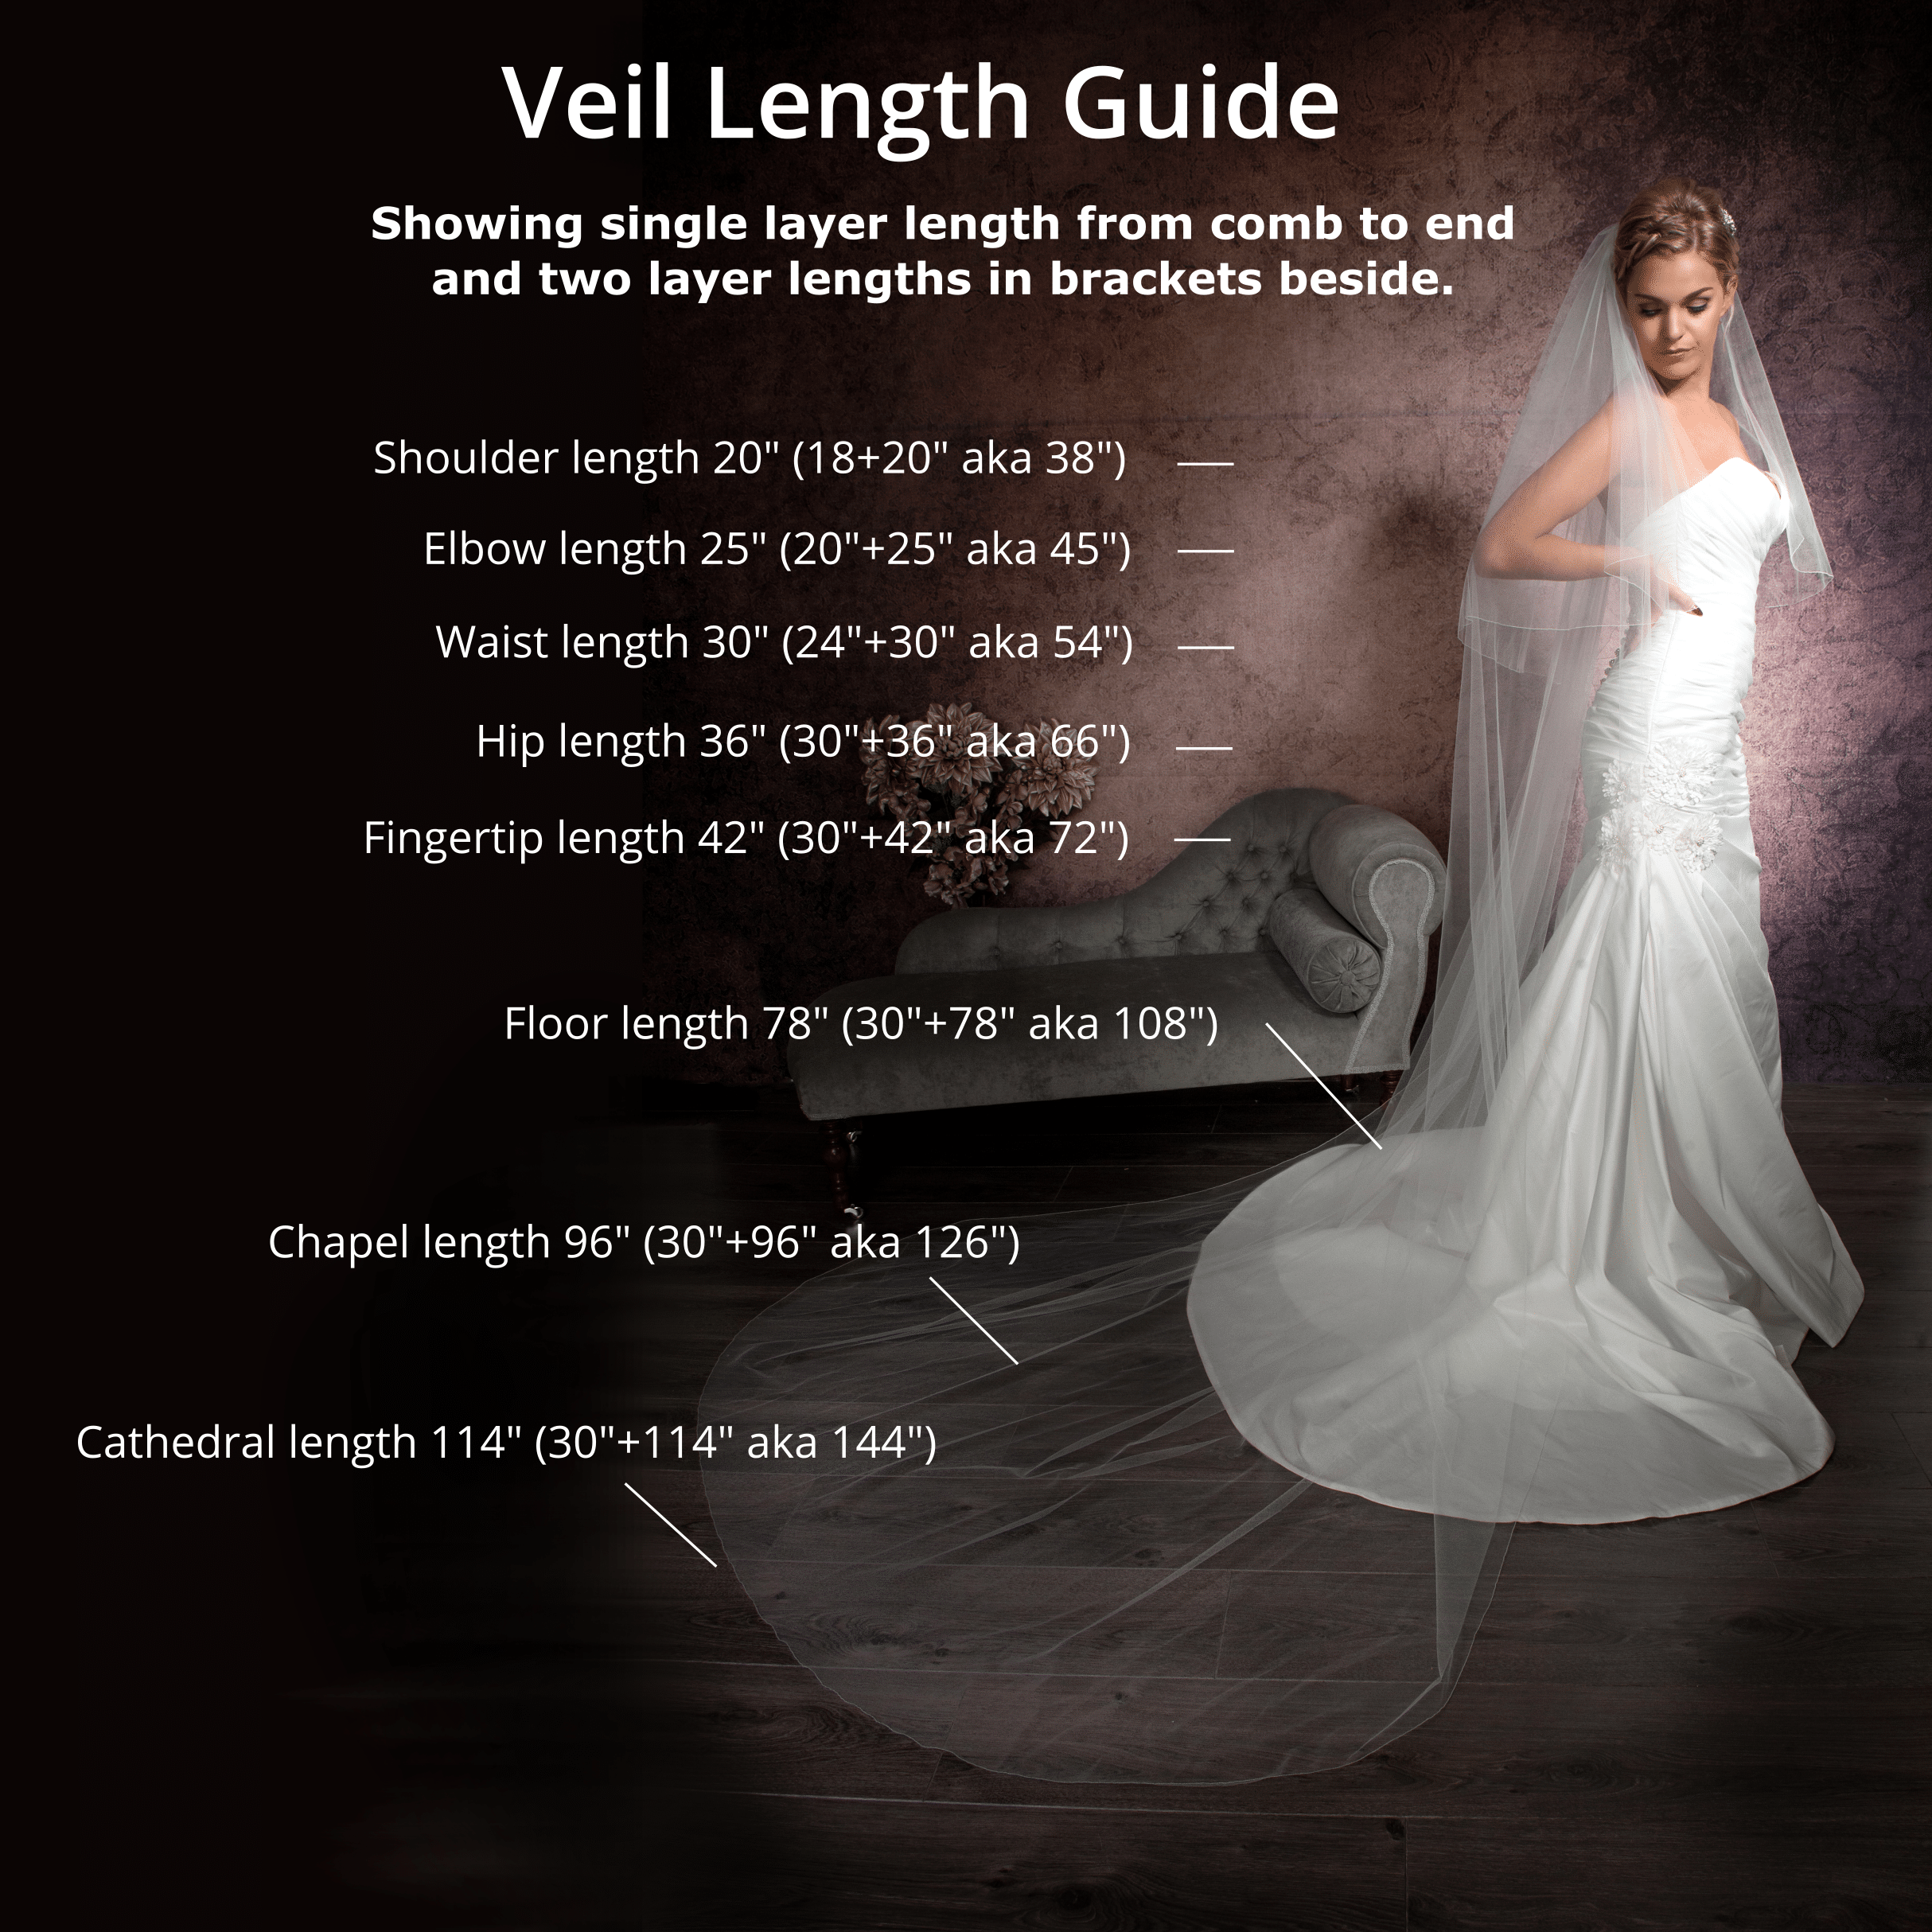 wedding veil length guide graphic